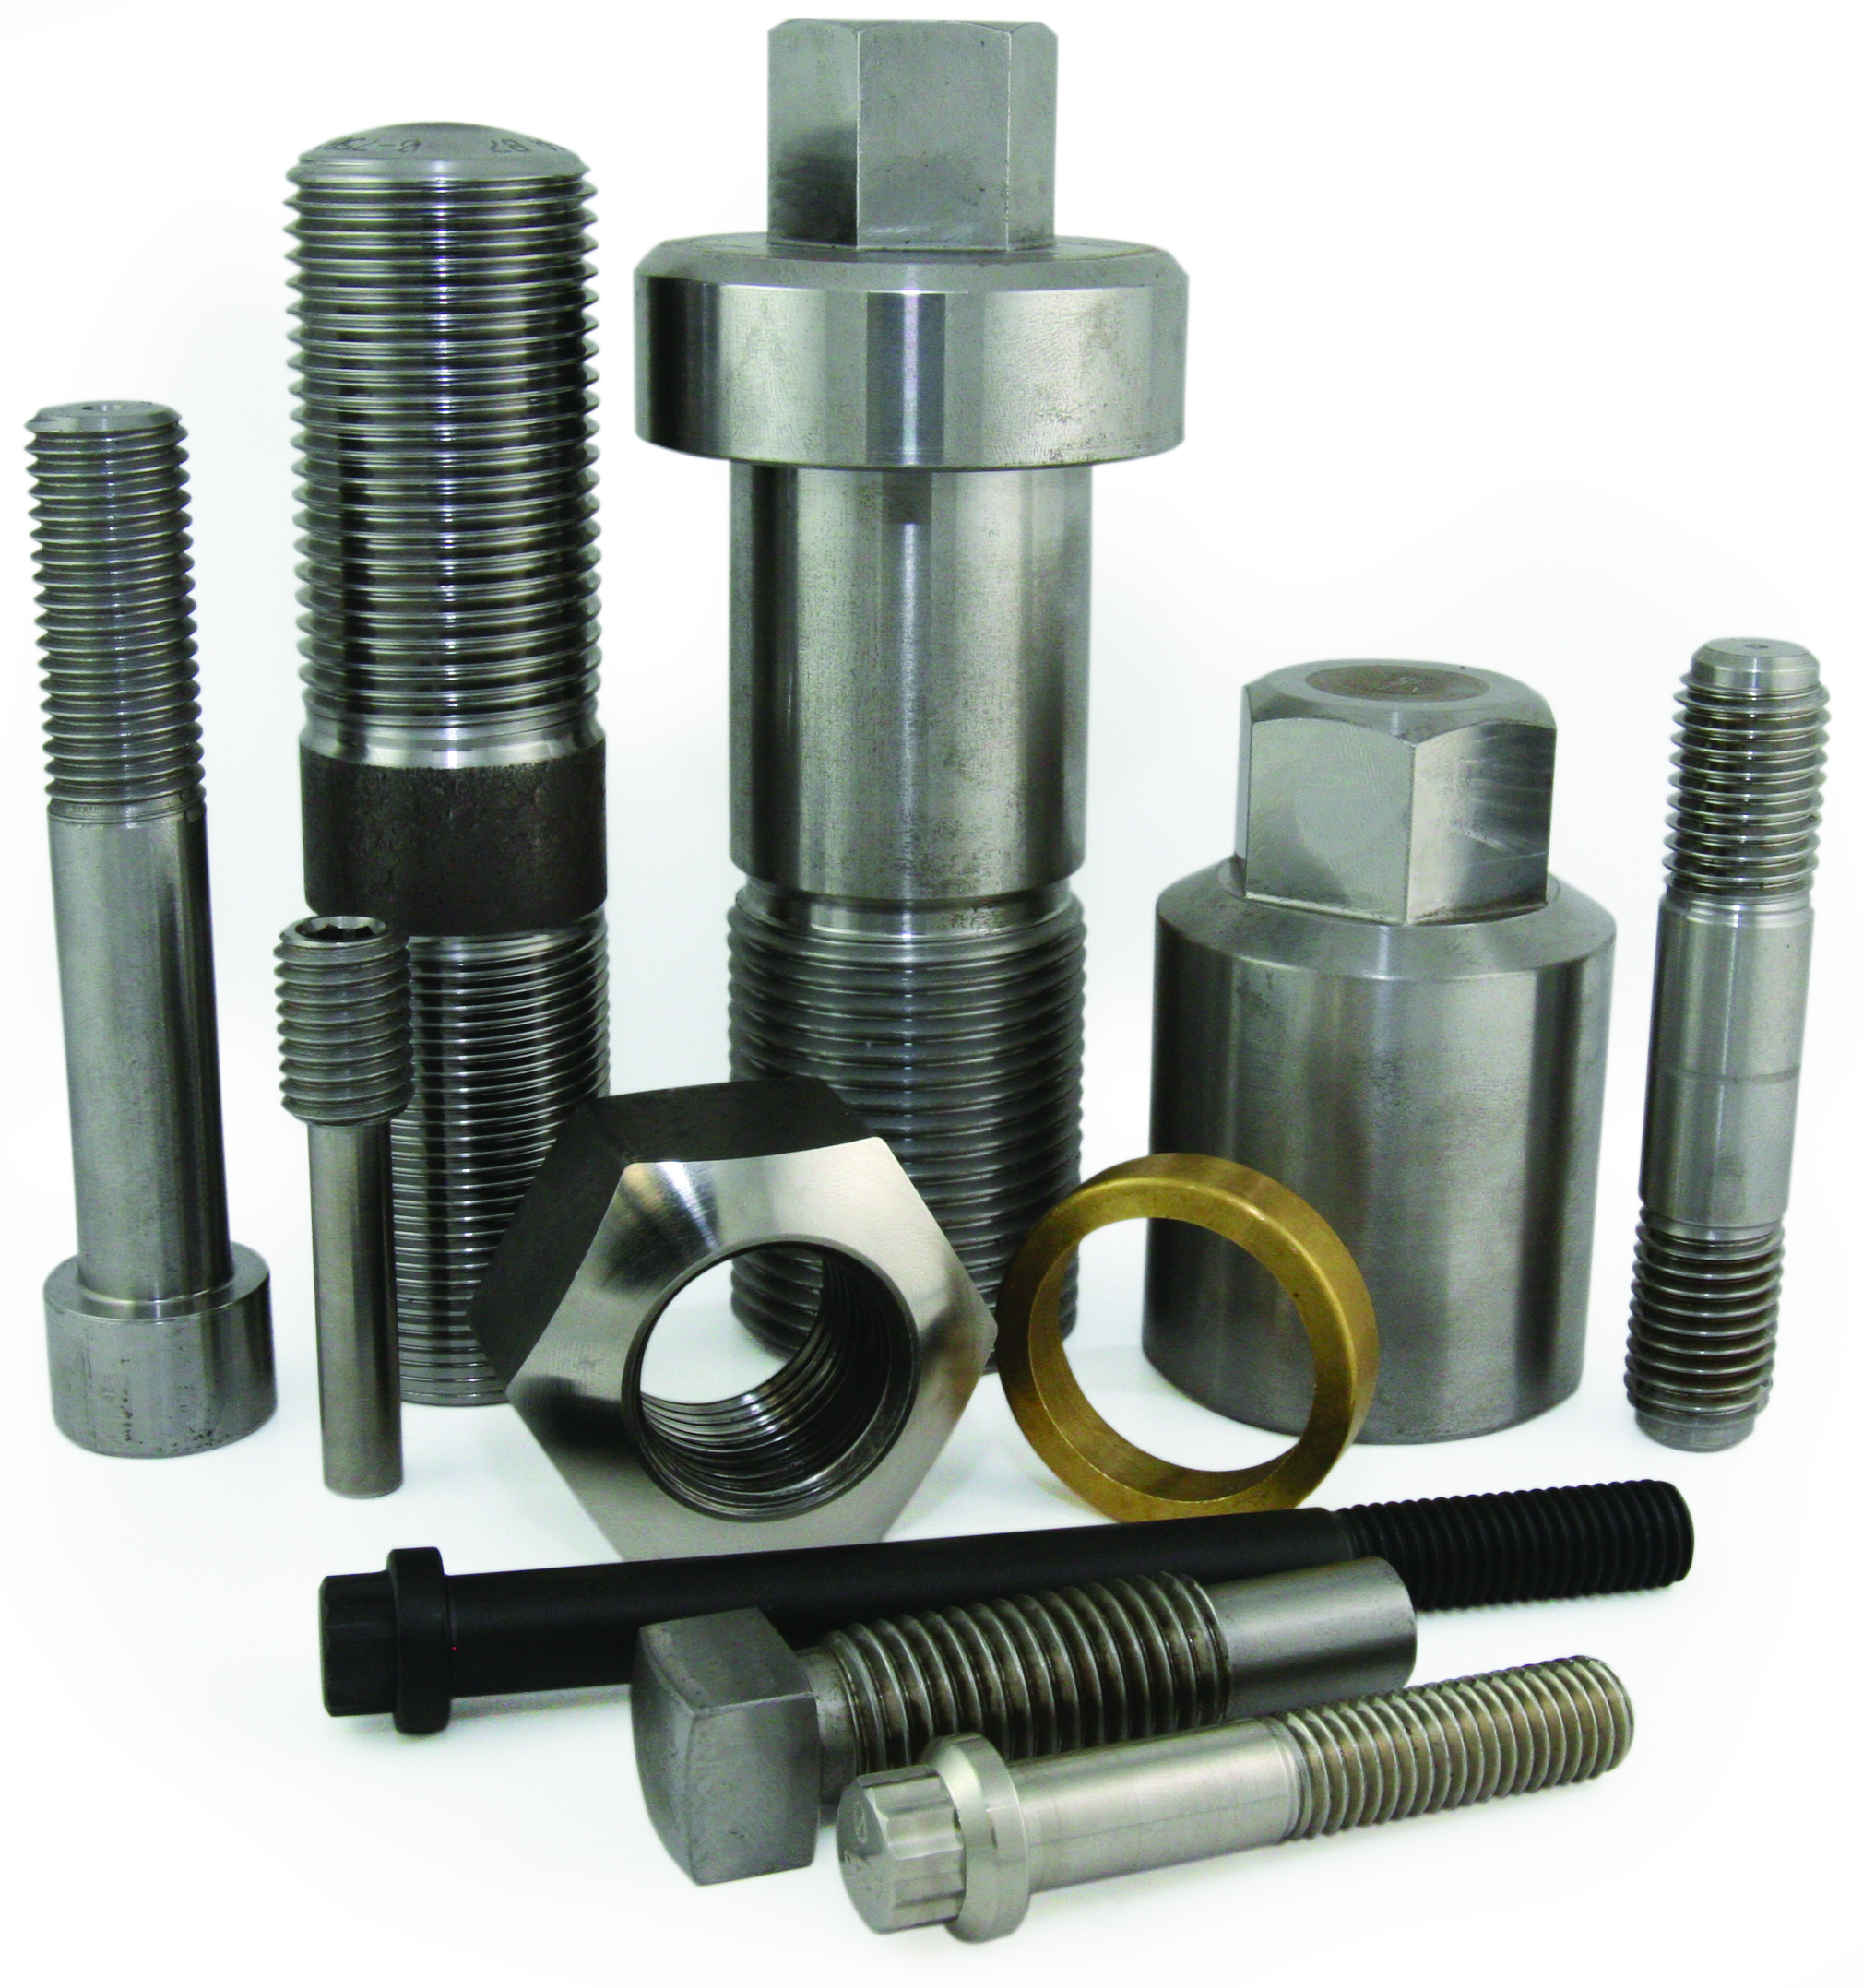 Piping Products   XLNN's